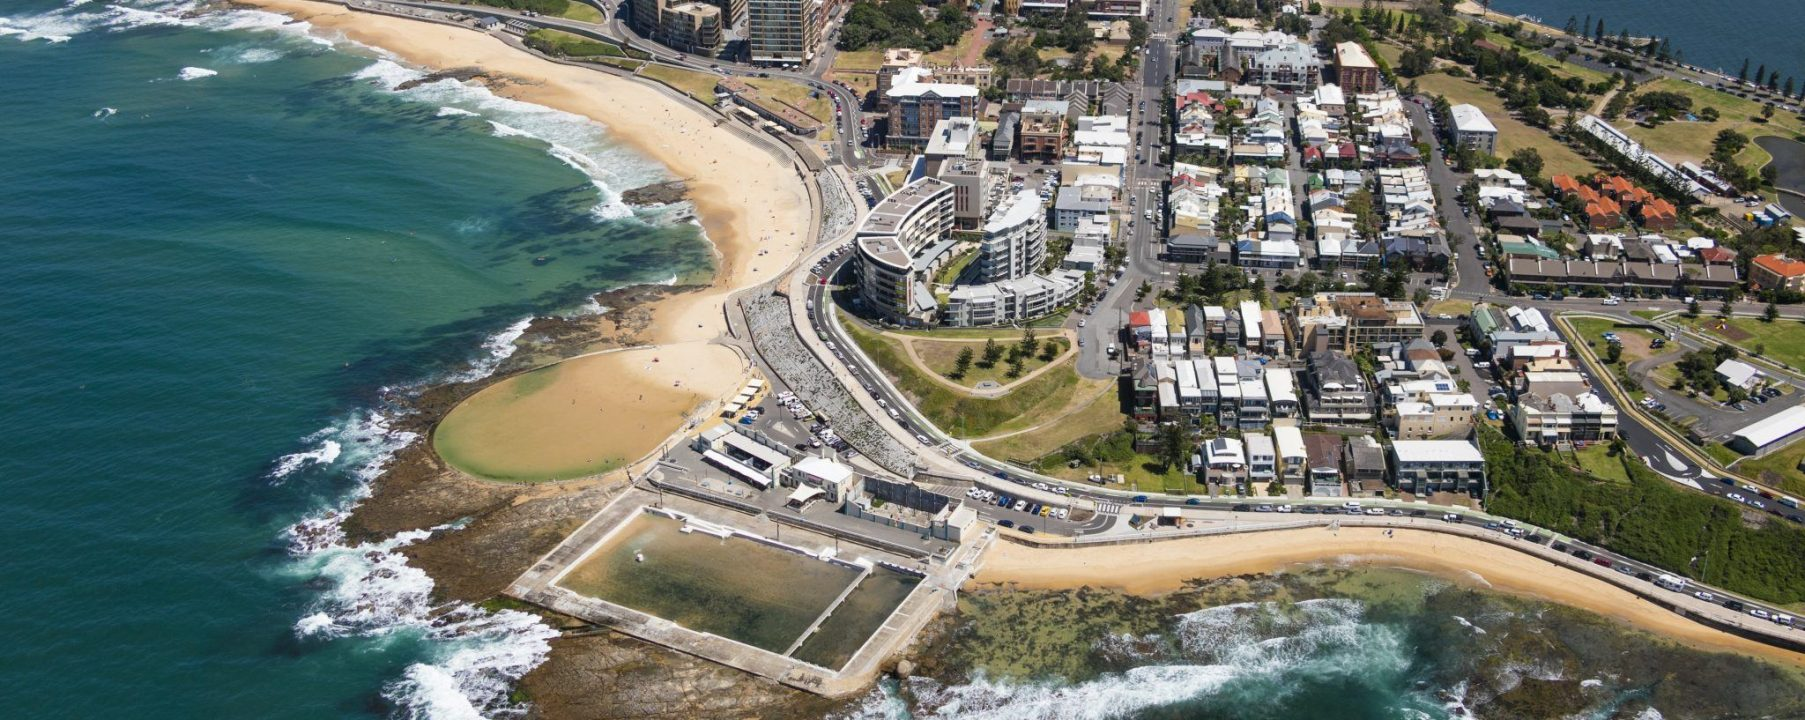 Sydney Coastline Beach Aerial Photo